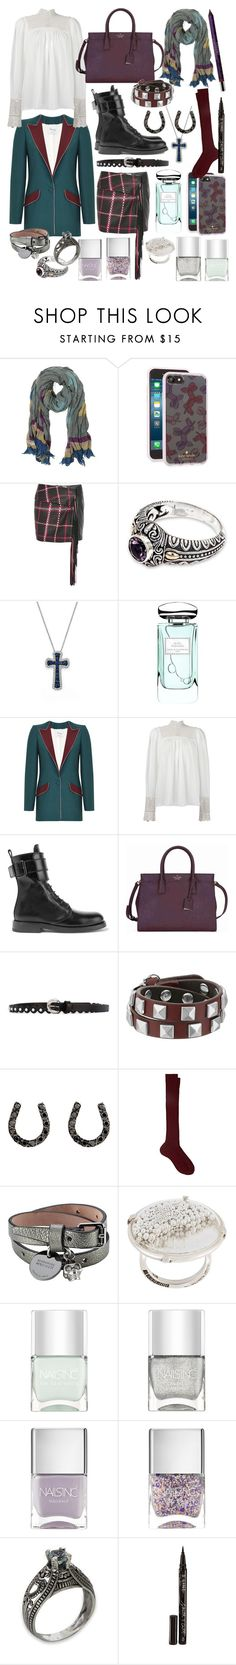 """unusual cosmic love"" by nothingisnormal ❤ liked on Polyvore featuring Zadig & Voltaire, Kate Spade, Magda Butrym, NOVICA, Bloomingdale's, By Terry, Hebe Studio, Ann Demeulemeester, Orciani and Rebecca Minkoff"